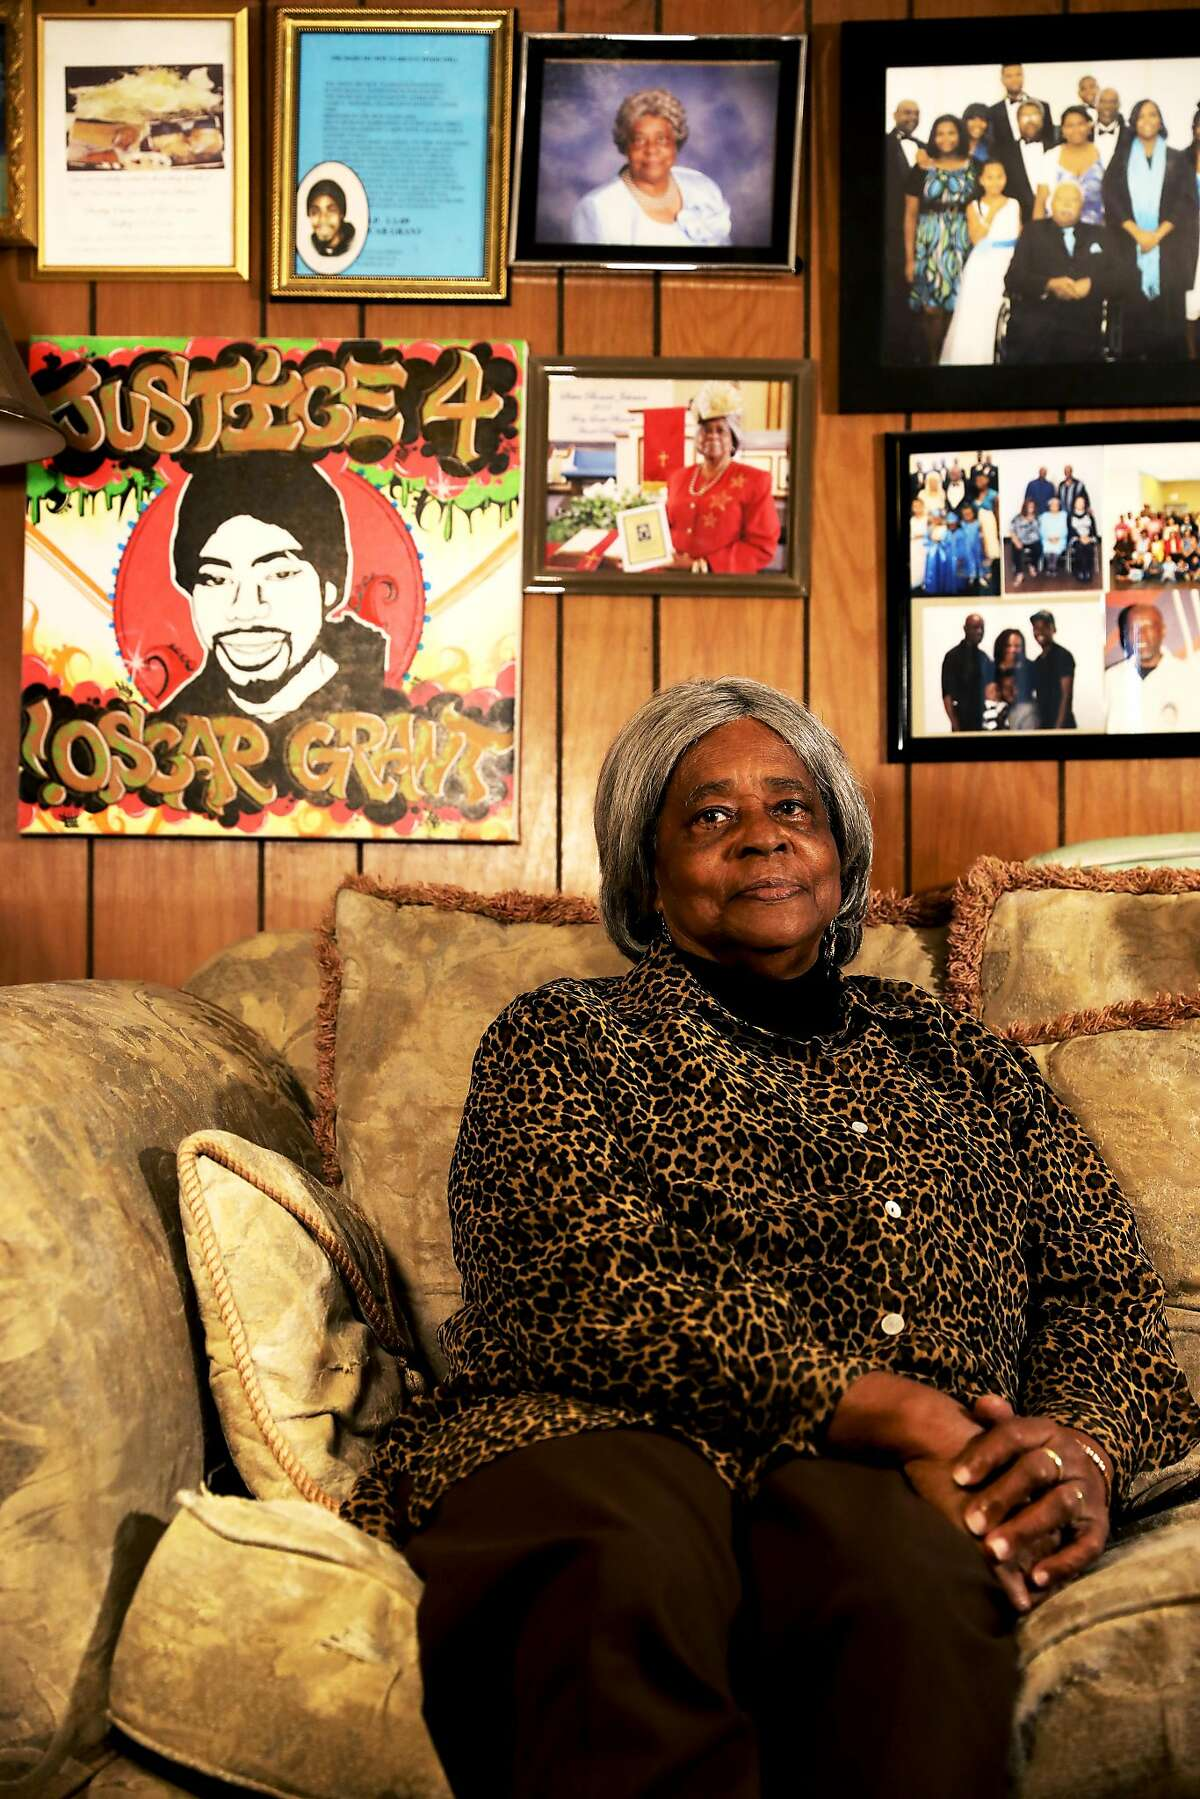 """Bonnie Johnson poses for a portrait in her home in Hayward, Calif., on Thursday, November 15, 2018. Johnson is the maternal grandmother of the late Oscar Grant, who was fatally shot on the Fruitvale BART Station platform by BART officer Johannes Mehserle on January 1, 2009. """"Anger will get you nowhere,"""" Johnson said. """"All I can do is say that when someone do something in life, in this case a life was taken, that person, I pray for them, too, because they gotta face their maker just like I have to face mine. And I pray for Mehserle all the time."""""""